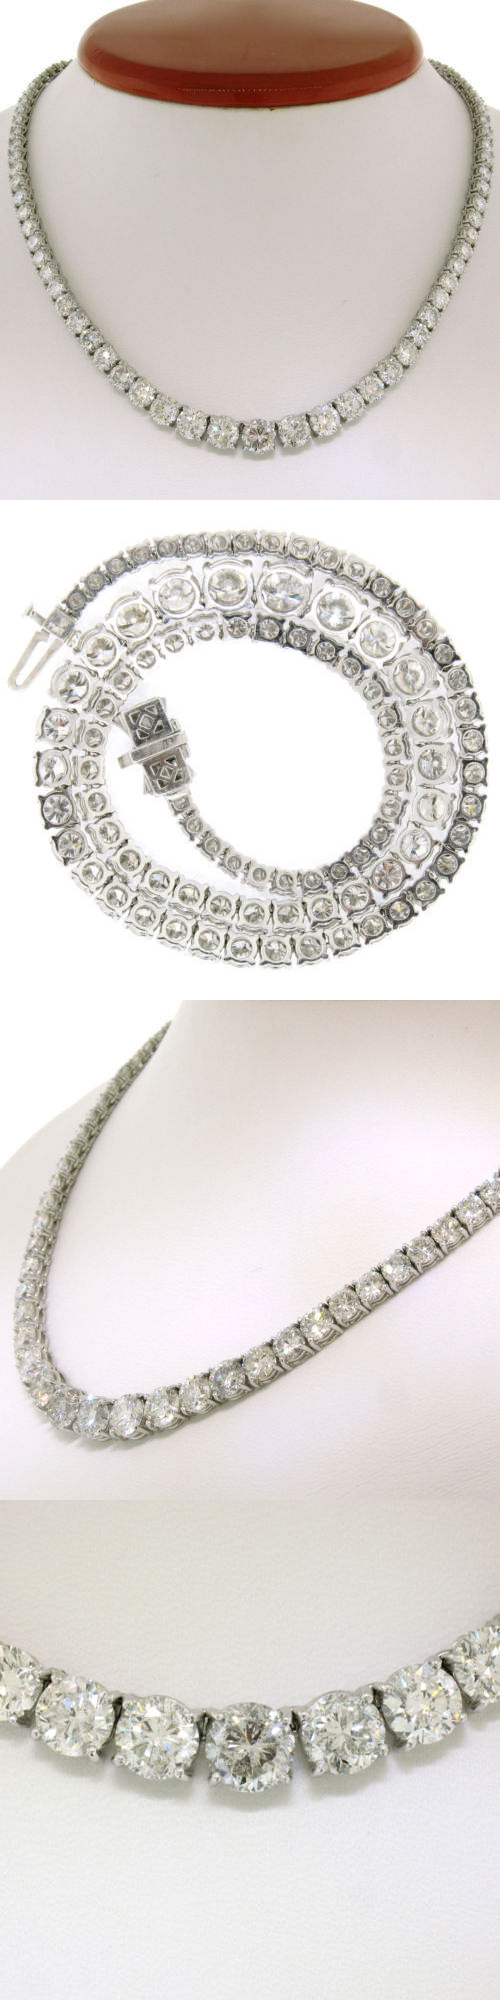 Diamond 164331: 35Ct Round D Vvs1 Diamond 14K White Gold Over Silver Graduated Tennis Necklace -> BUY IT NOW ONLY: $620 on eBay!